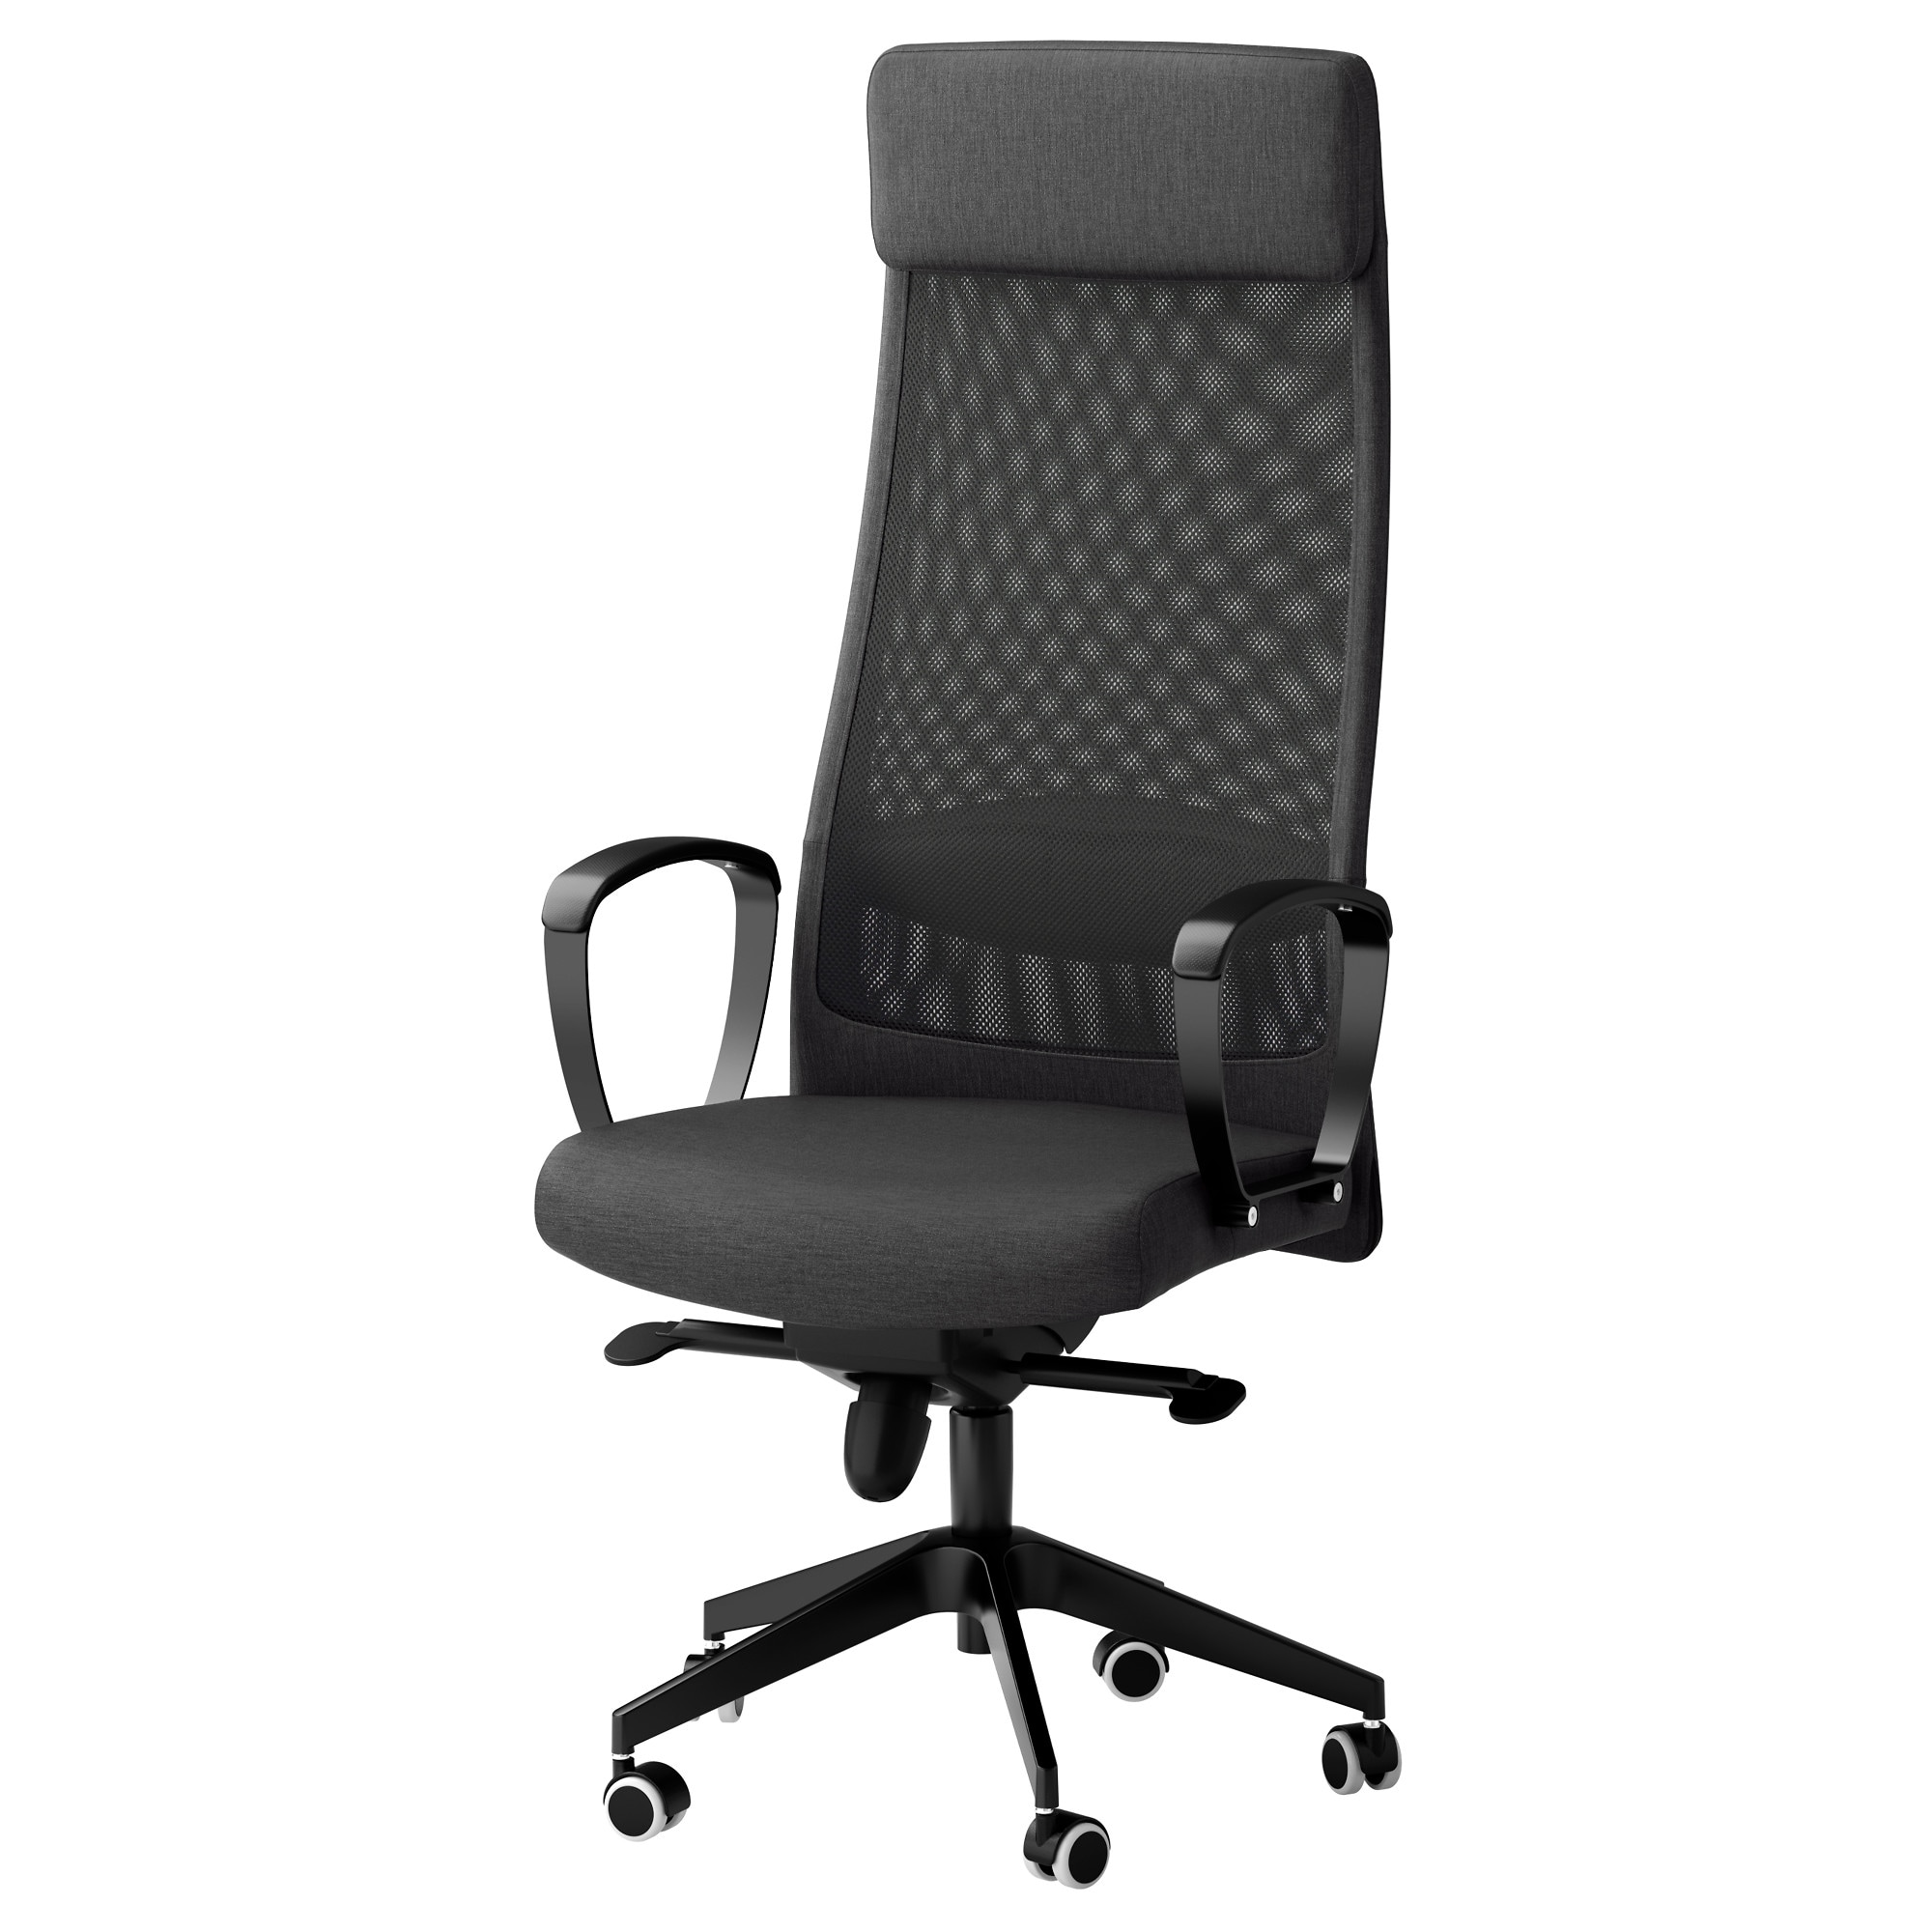 Markus Swivel Chair Vissle Dark Gray Tested For 242 Lb 8 Oz Width